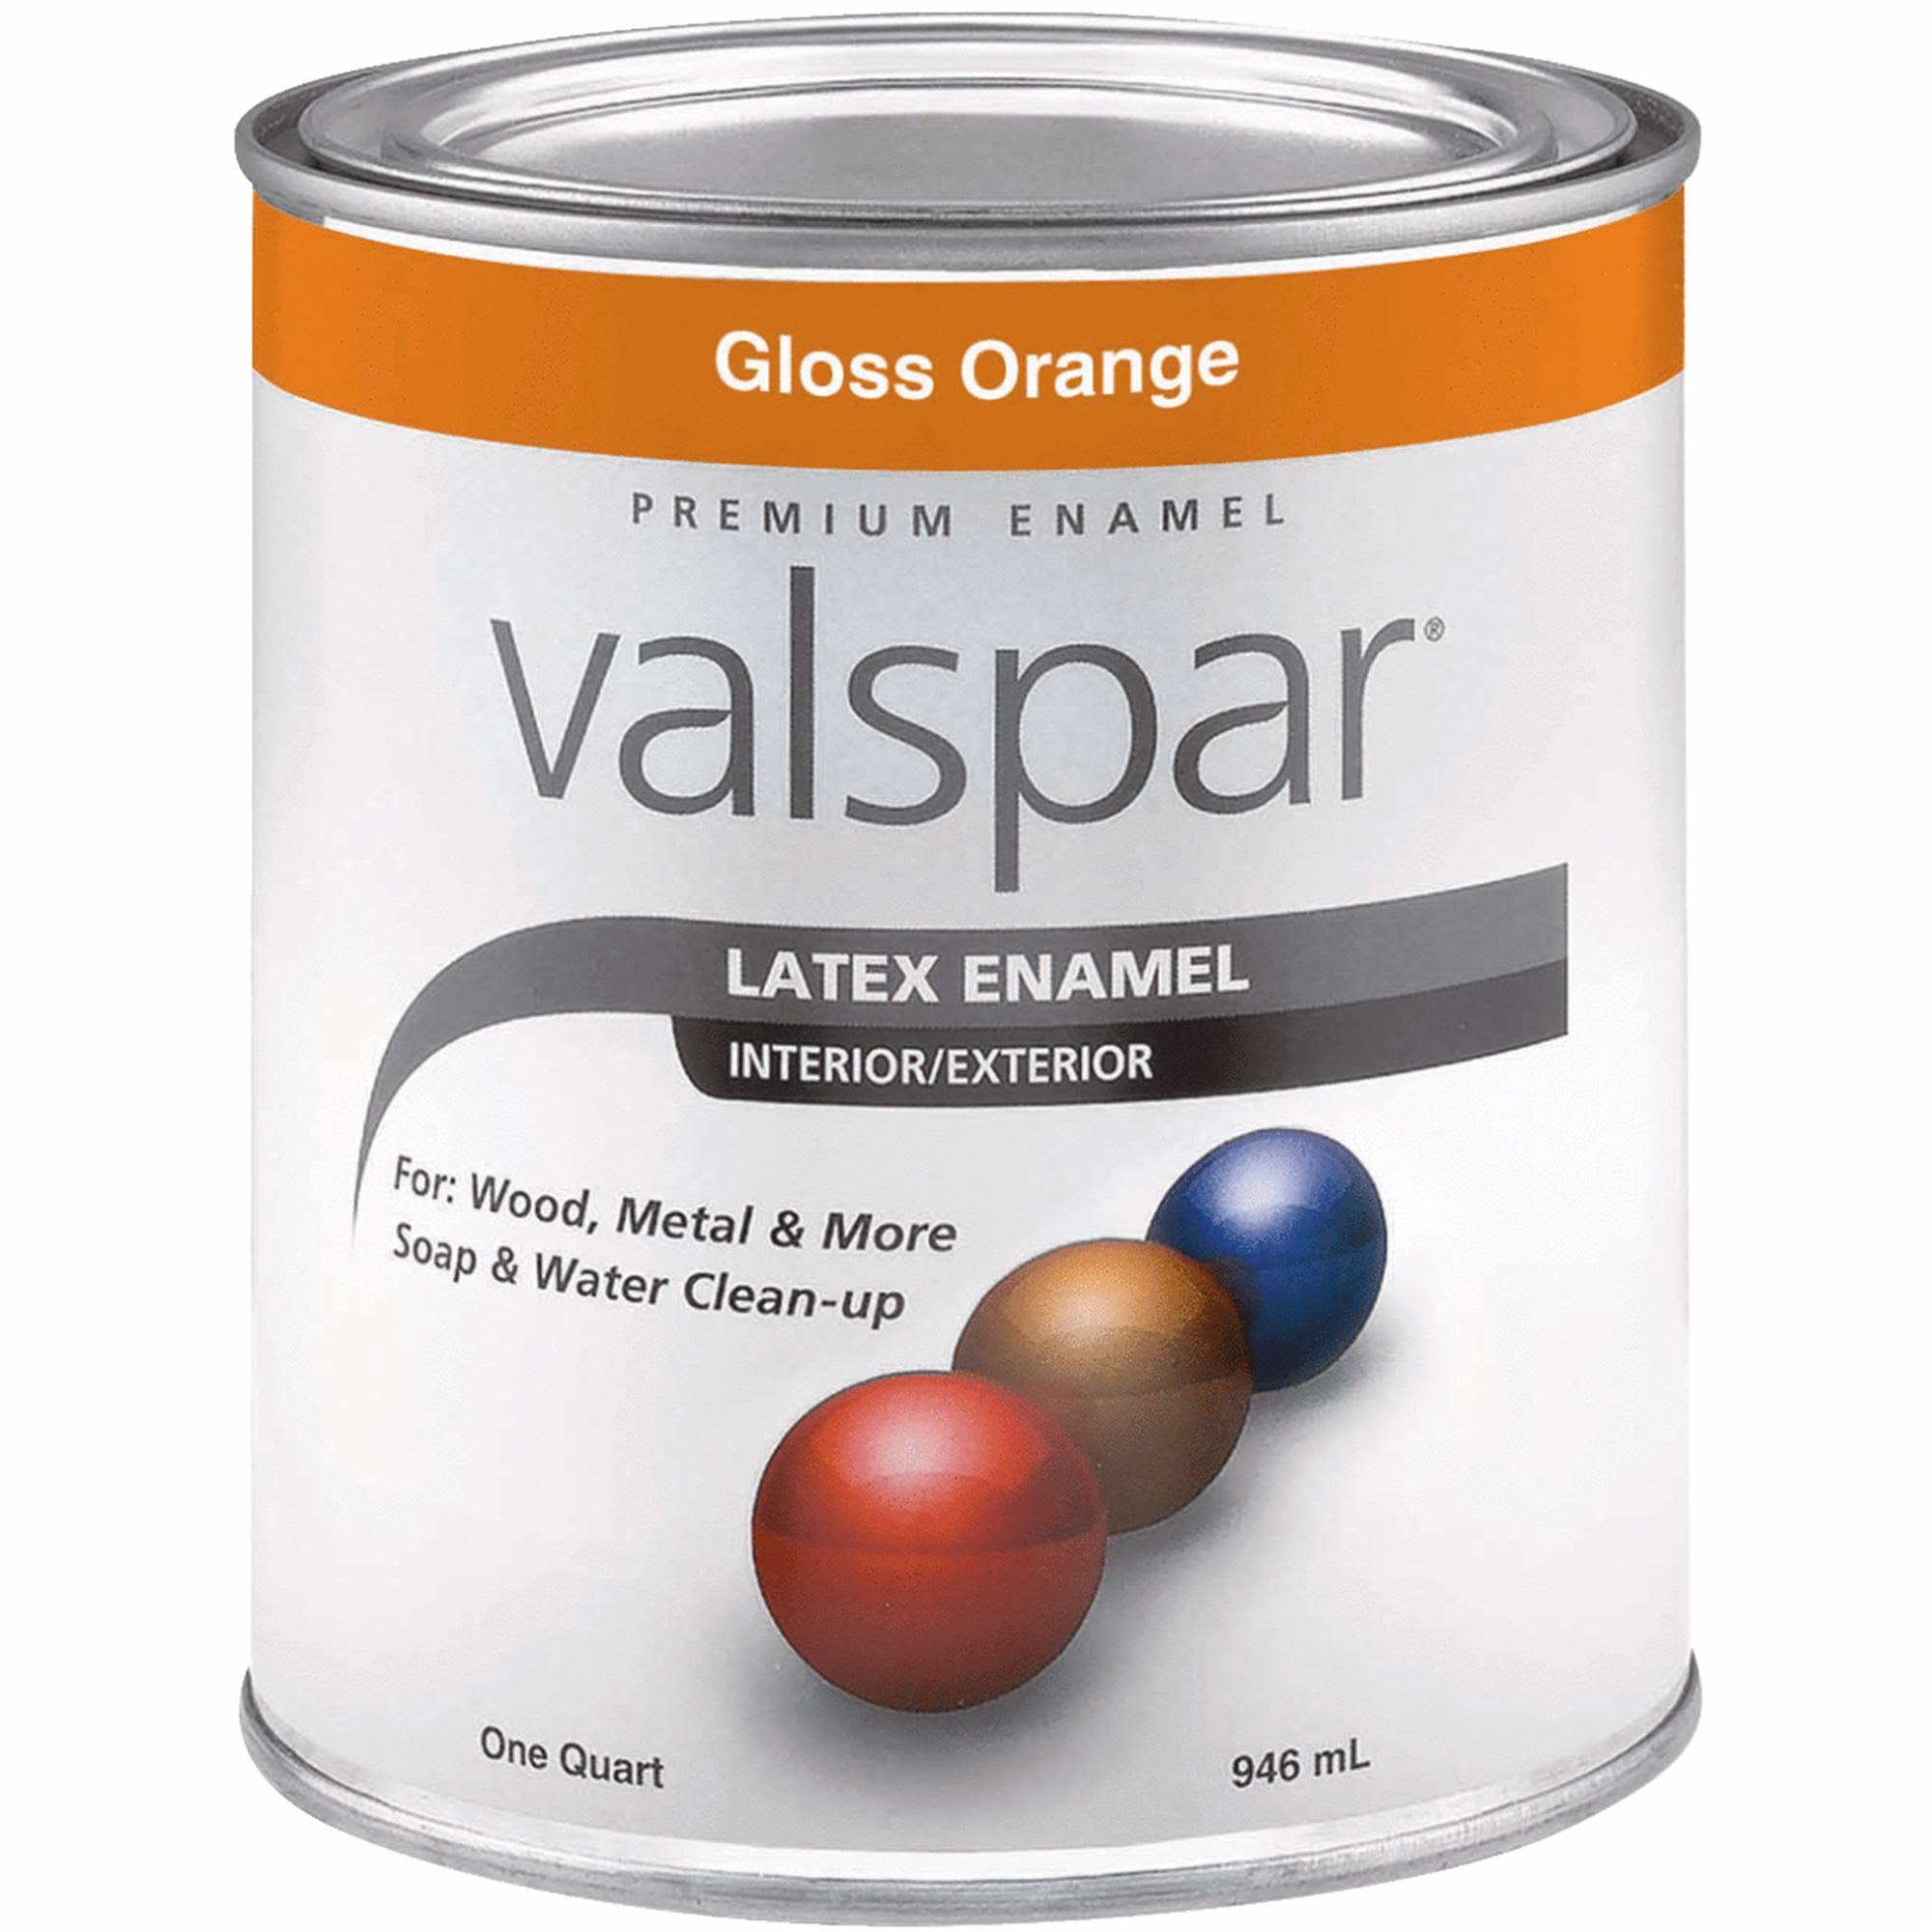 Valspar Latex Enamel - Gloss Orange, 1qt